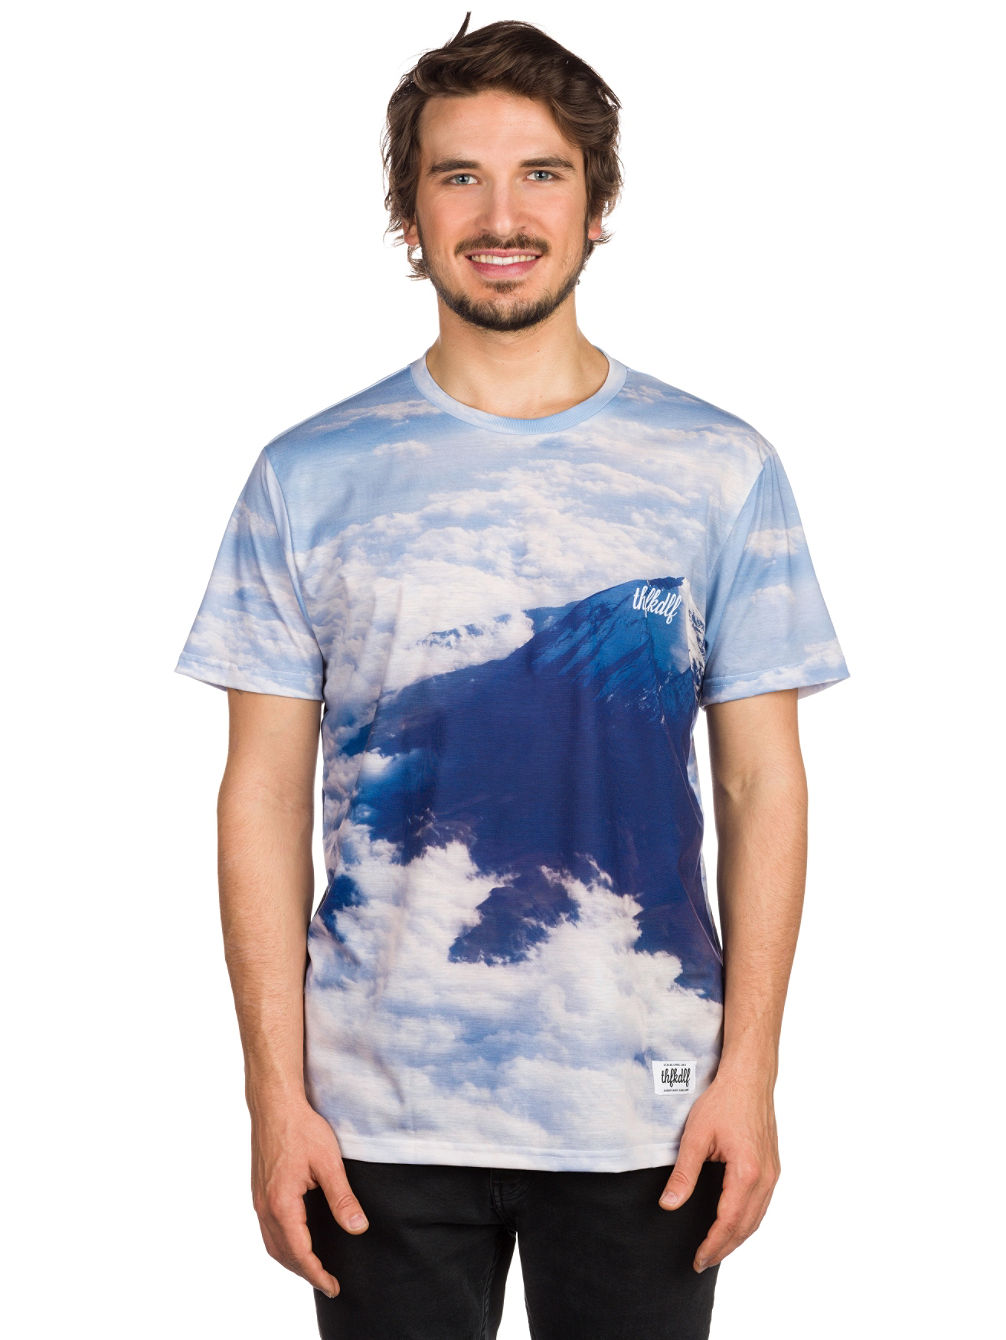 thfkdlf-summit-t-shirt